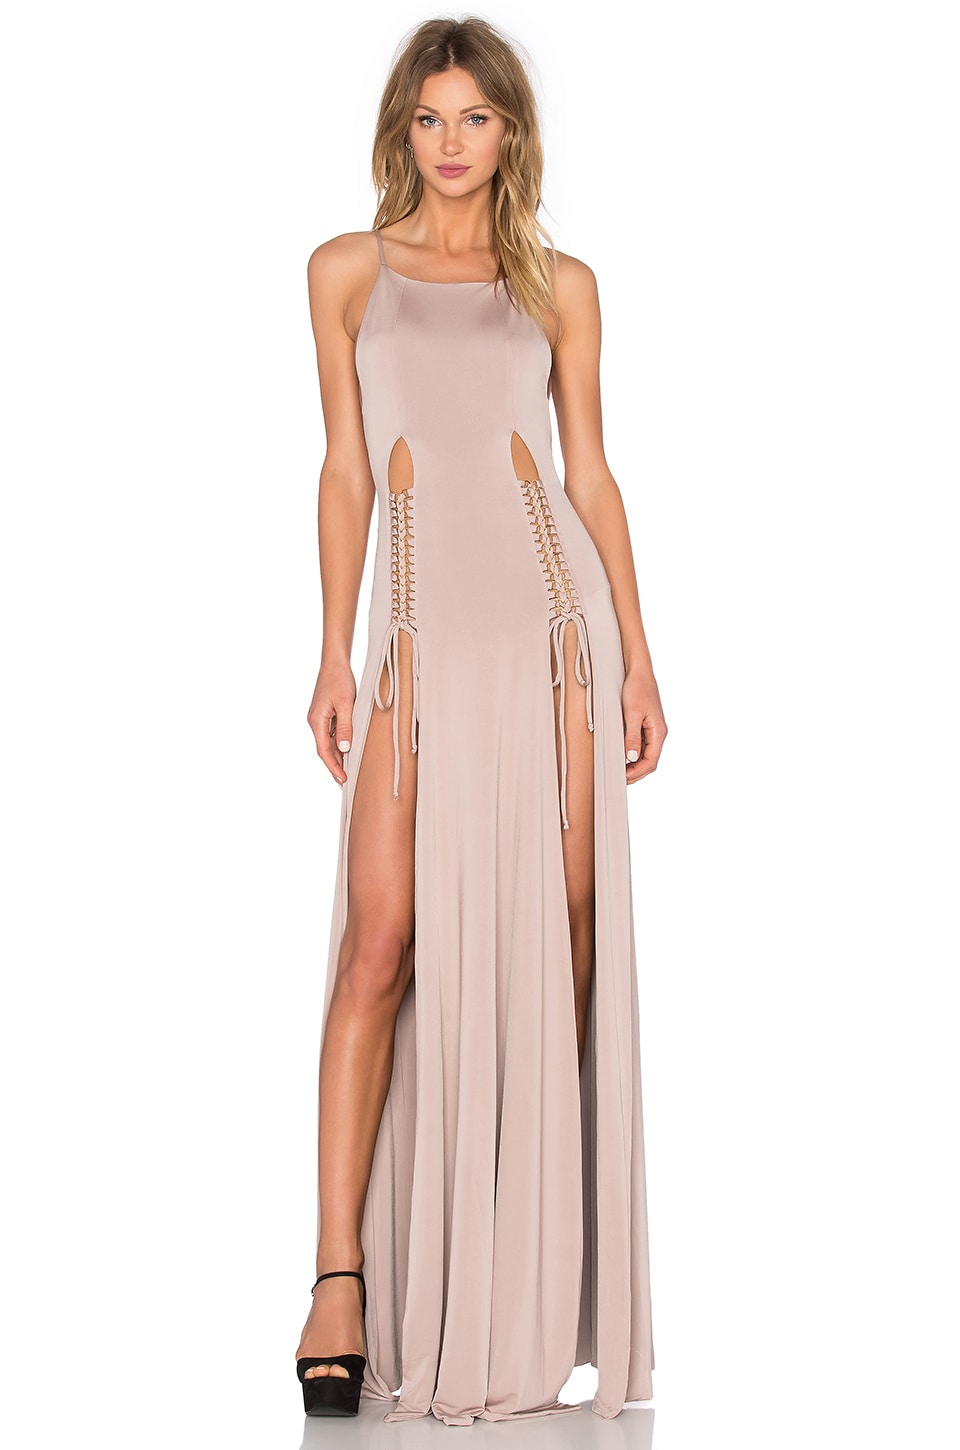 Gemeli Power Qadriyya Dress in Blush Nude